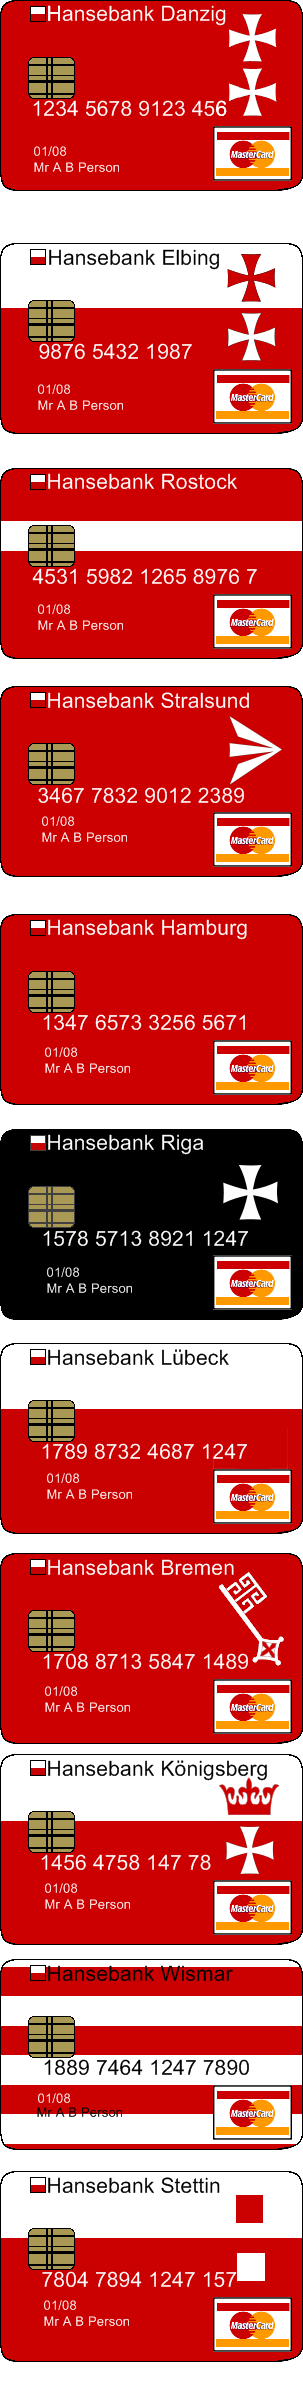 Hanseatic credit cards by Condottiero on DeviantArt